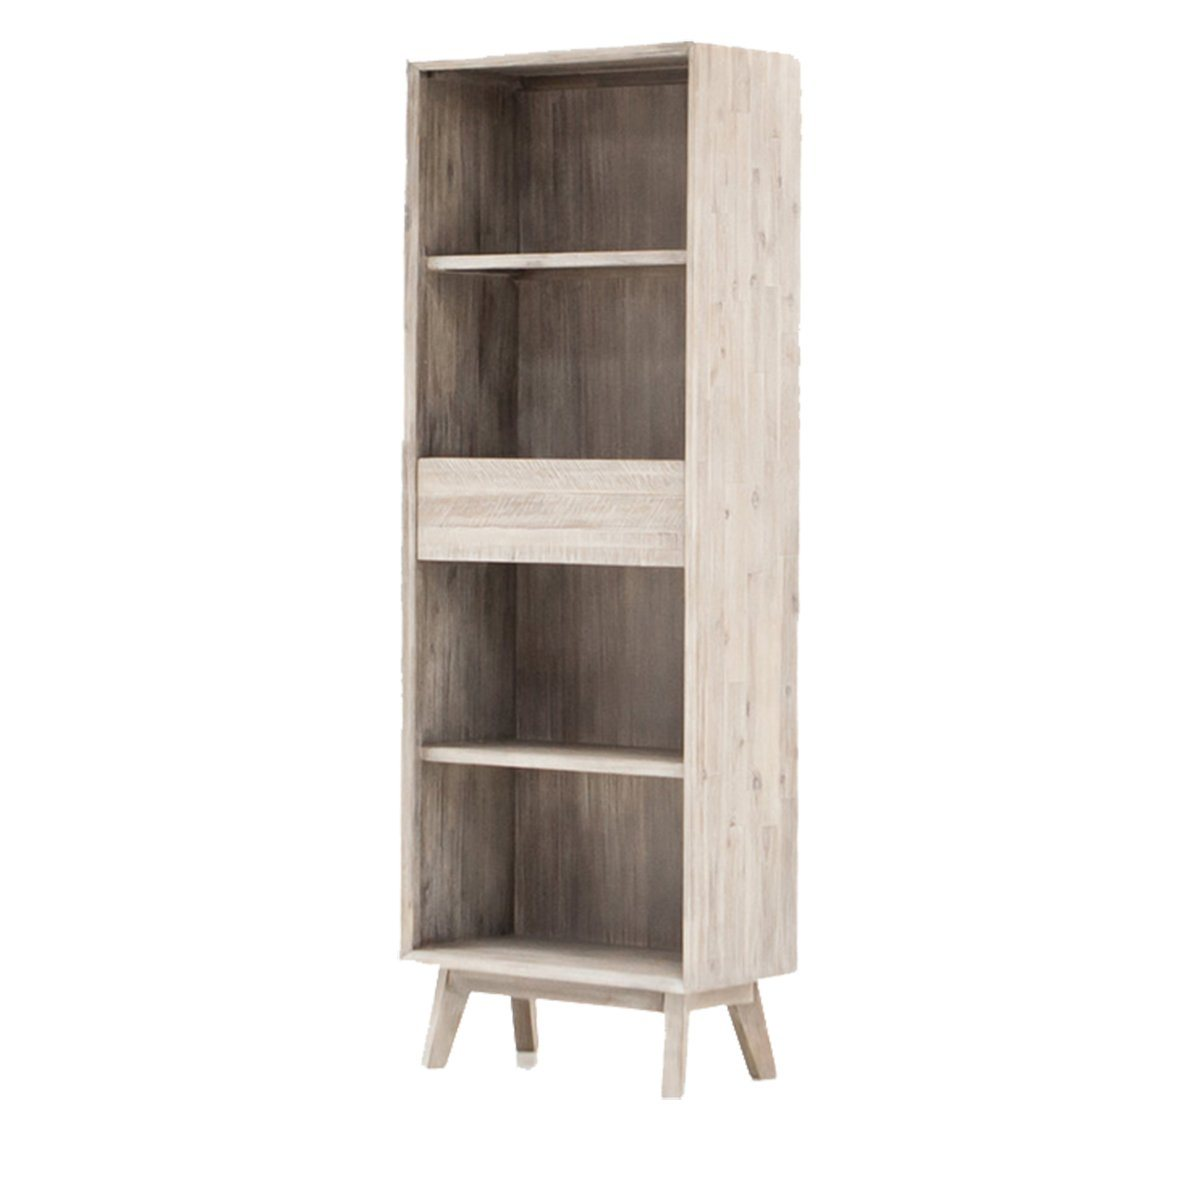 GIA TALL BOOKSHELF Bookshelf Showhome Furniture